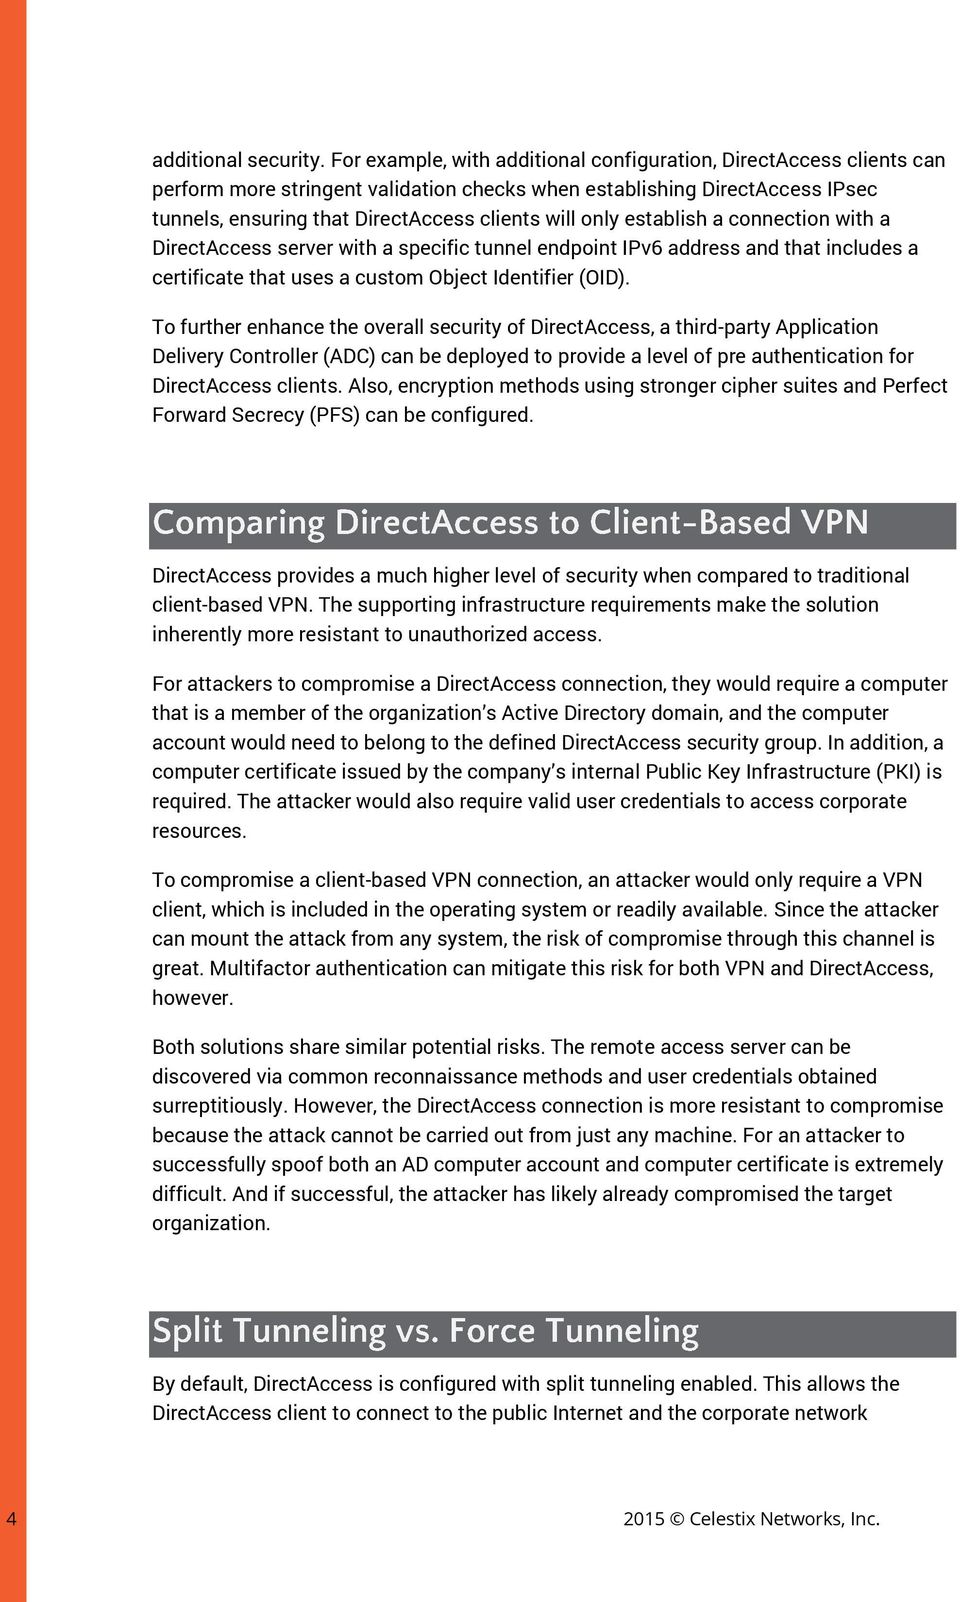 only establish a connection with a DirectAccess server with a specific tunnel endpoint IPv6 address and that includes a certificate that uses a custom Object Identifier (OID).